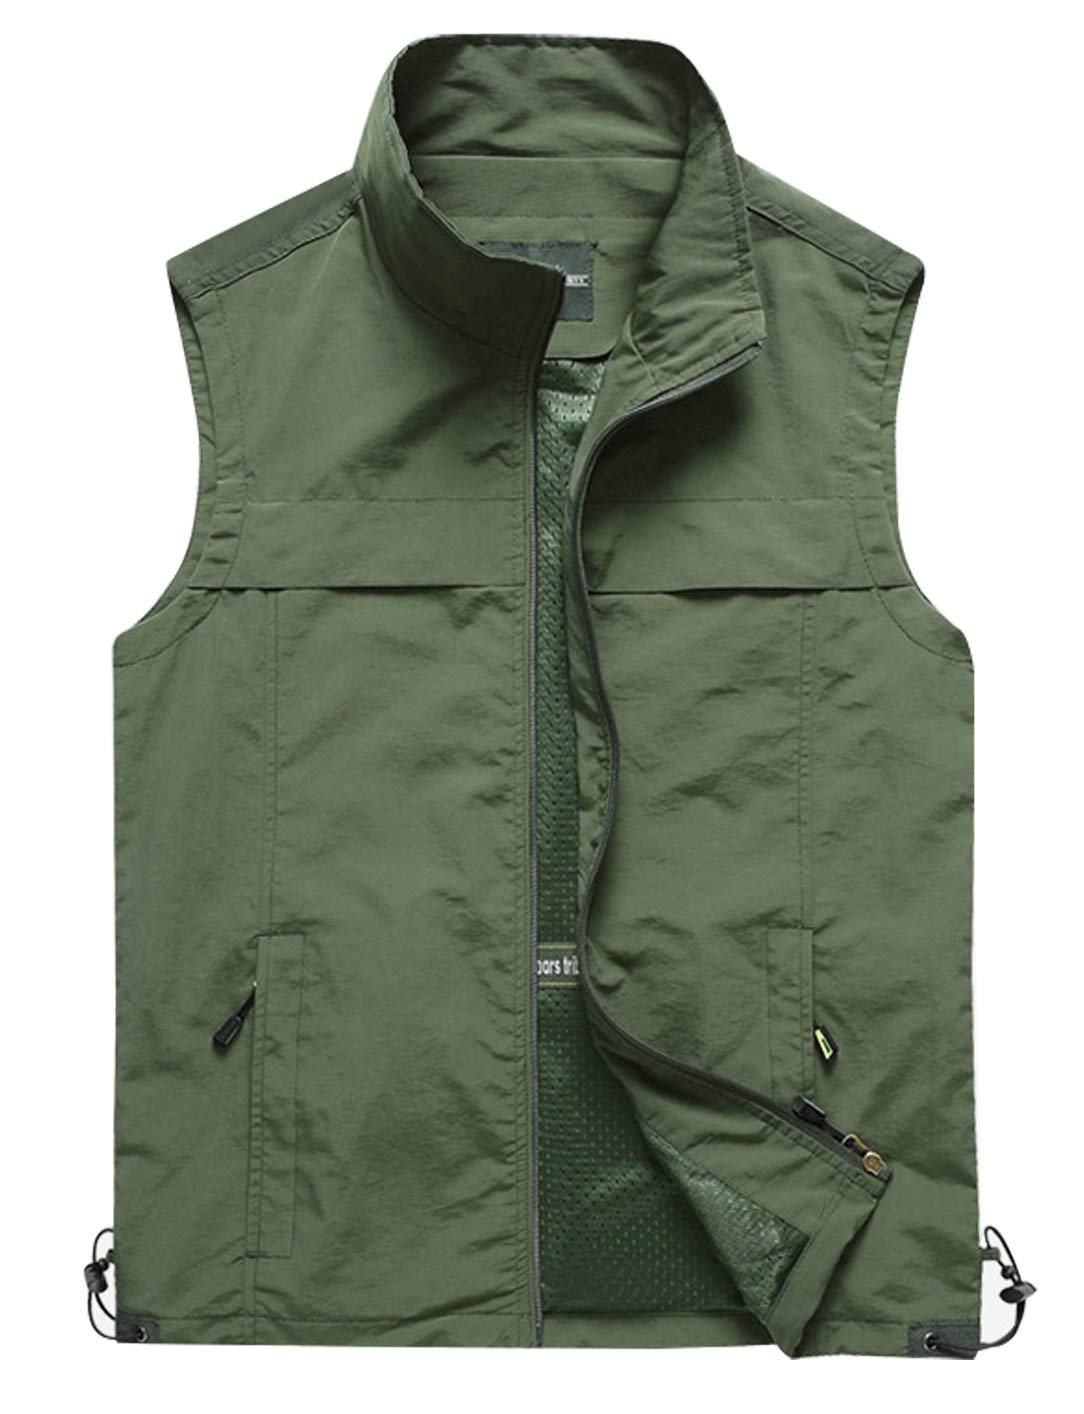 Gihuo Men's Lightweight Quick Dry Outdoor Multi Pockets Fishing Vest (X-Large, Style3-Army Green) by Gihuo